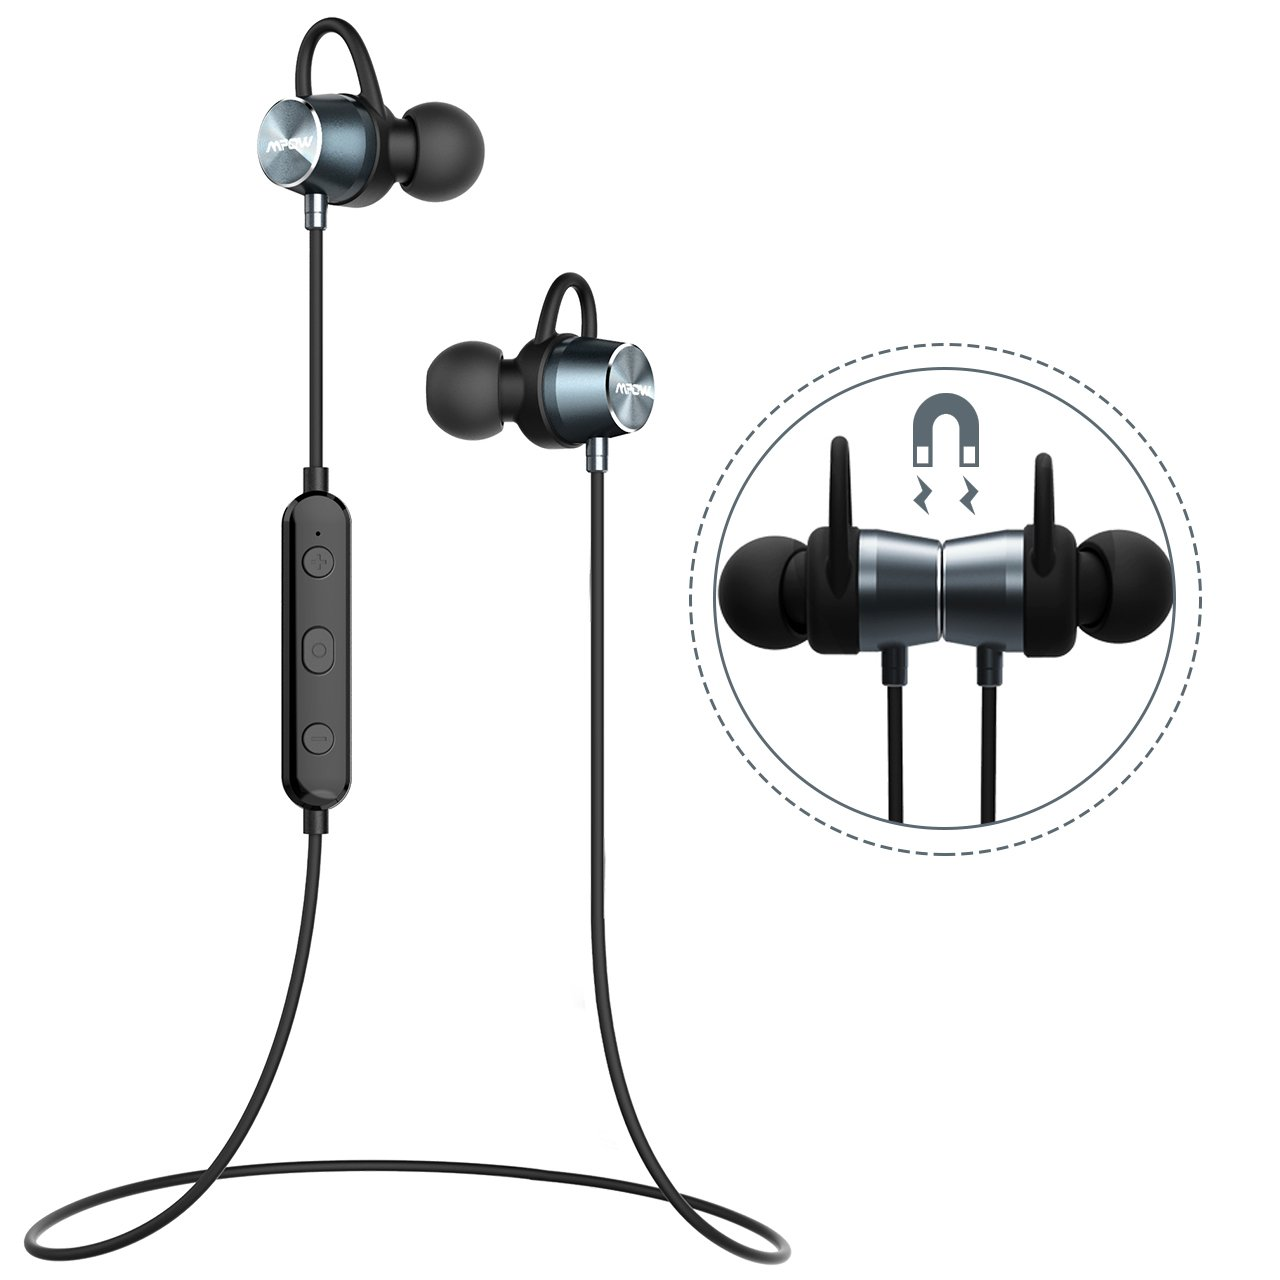 Bluetooth Headphones Mpow Judge Magnetic Bluetooth Earbuds, IPX7 Sweatproof Magnetic Stereo Bluetooth Earphones Wireless Sports Earbuds Inline Control with MIC for Running Jogging Workout-Black MPBH083AD-CA